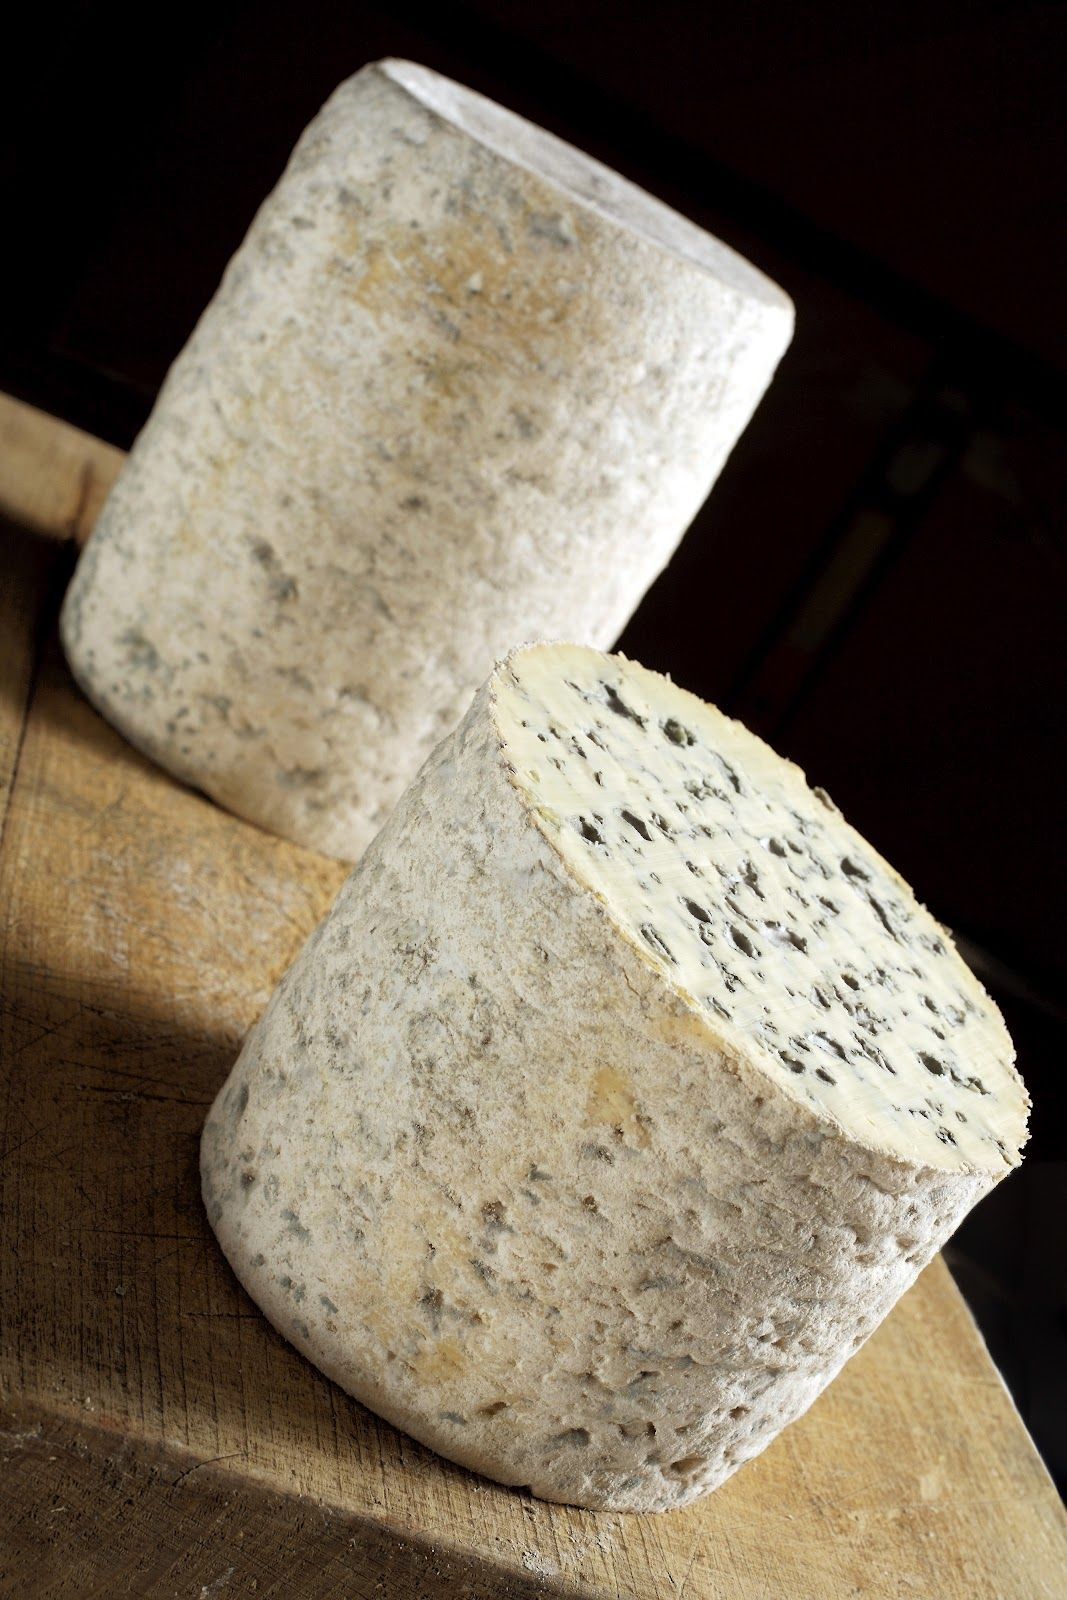 Produced in the Auvergne region, Fourme d'Ambert (or simply Ambert) is one of France's oldest cheeses. The cheese is a traditional, farmhouse blue cheese that is more supple and dense than most blues.